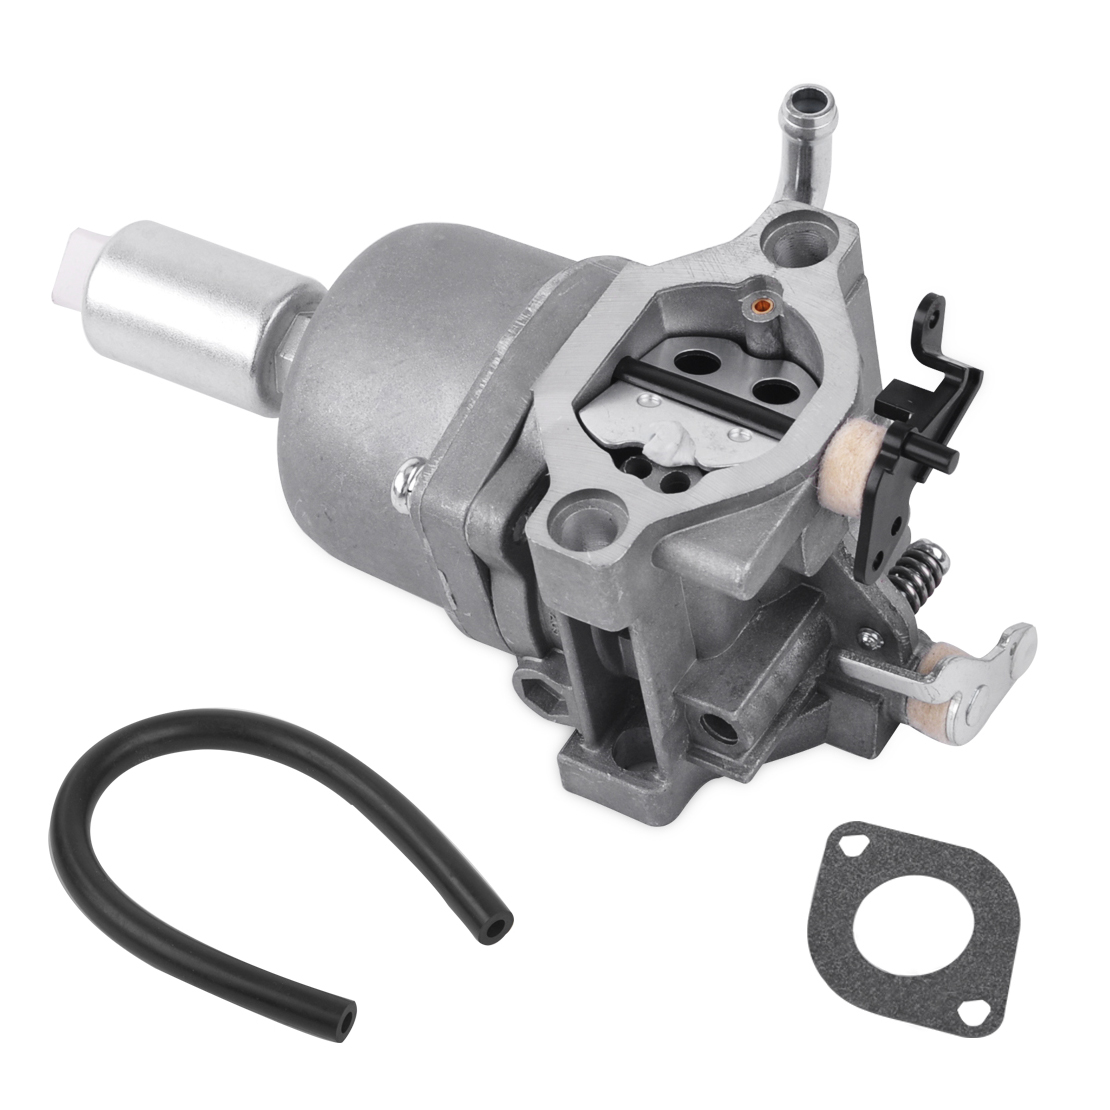 LETAOSK 2 pin Carburetor Carb fit for Briggs & Stratton 591731 594593 Nikki 699915 697122 Motor Replacement high quality replacement carburetor parts tool fit for 250 xv250 1988 2014 carb